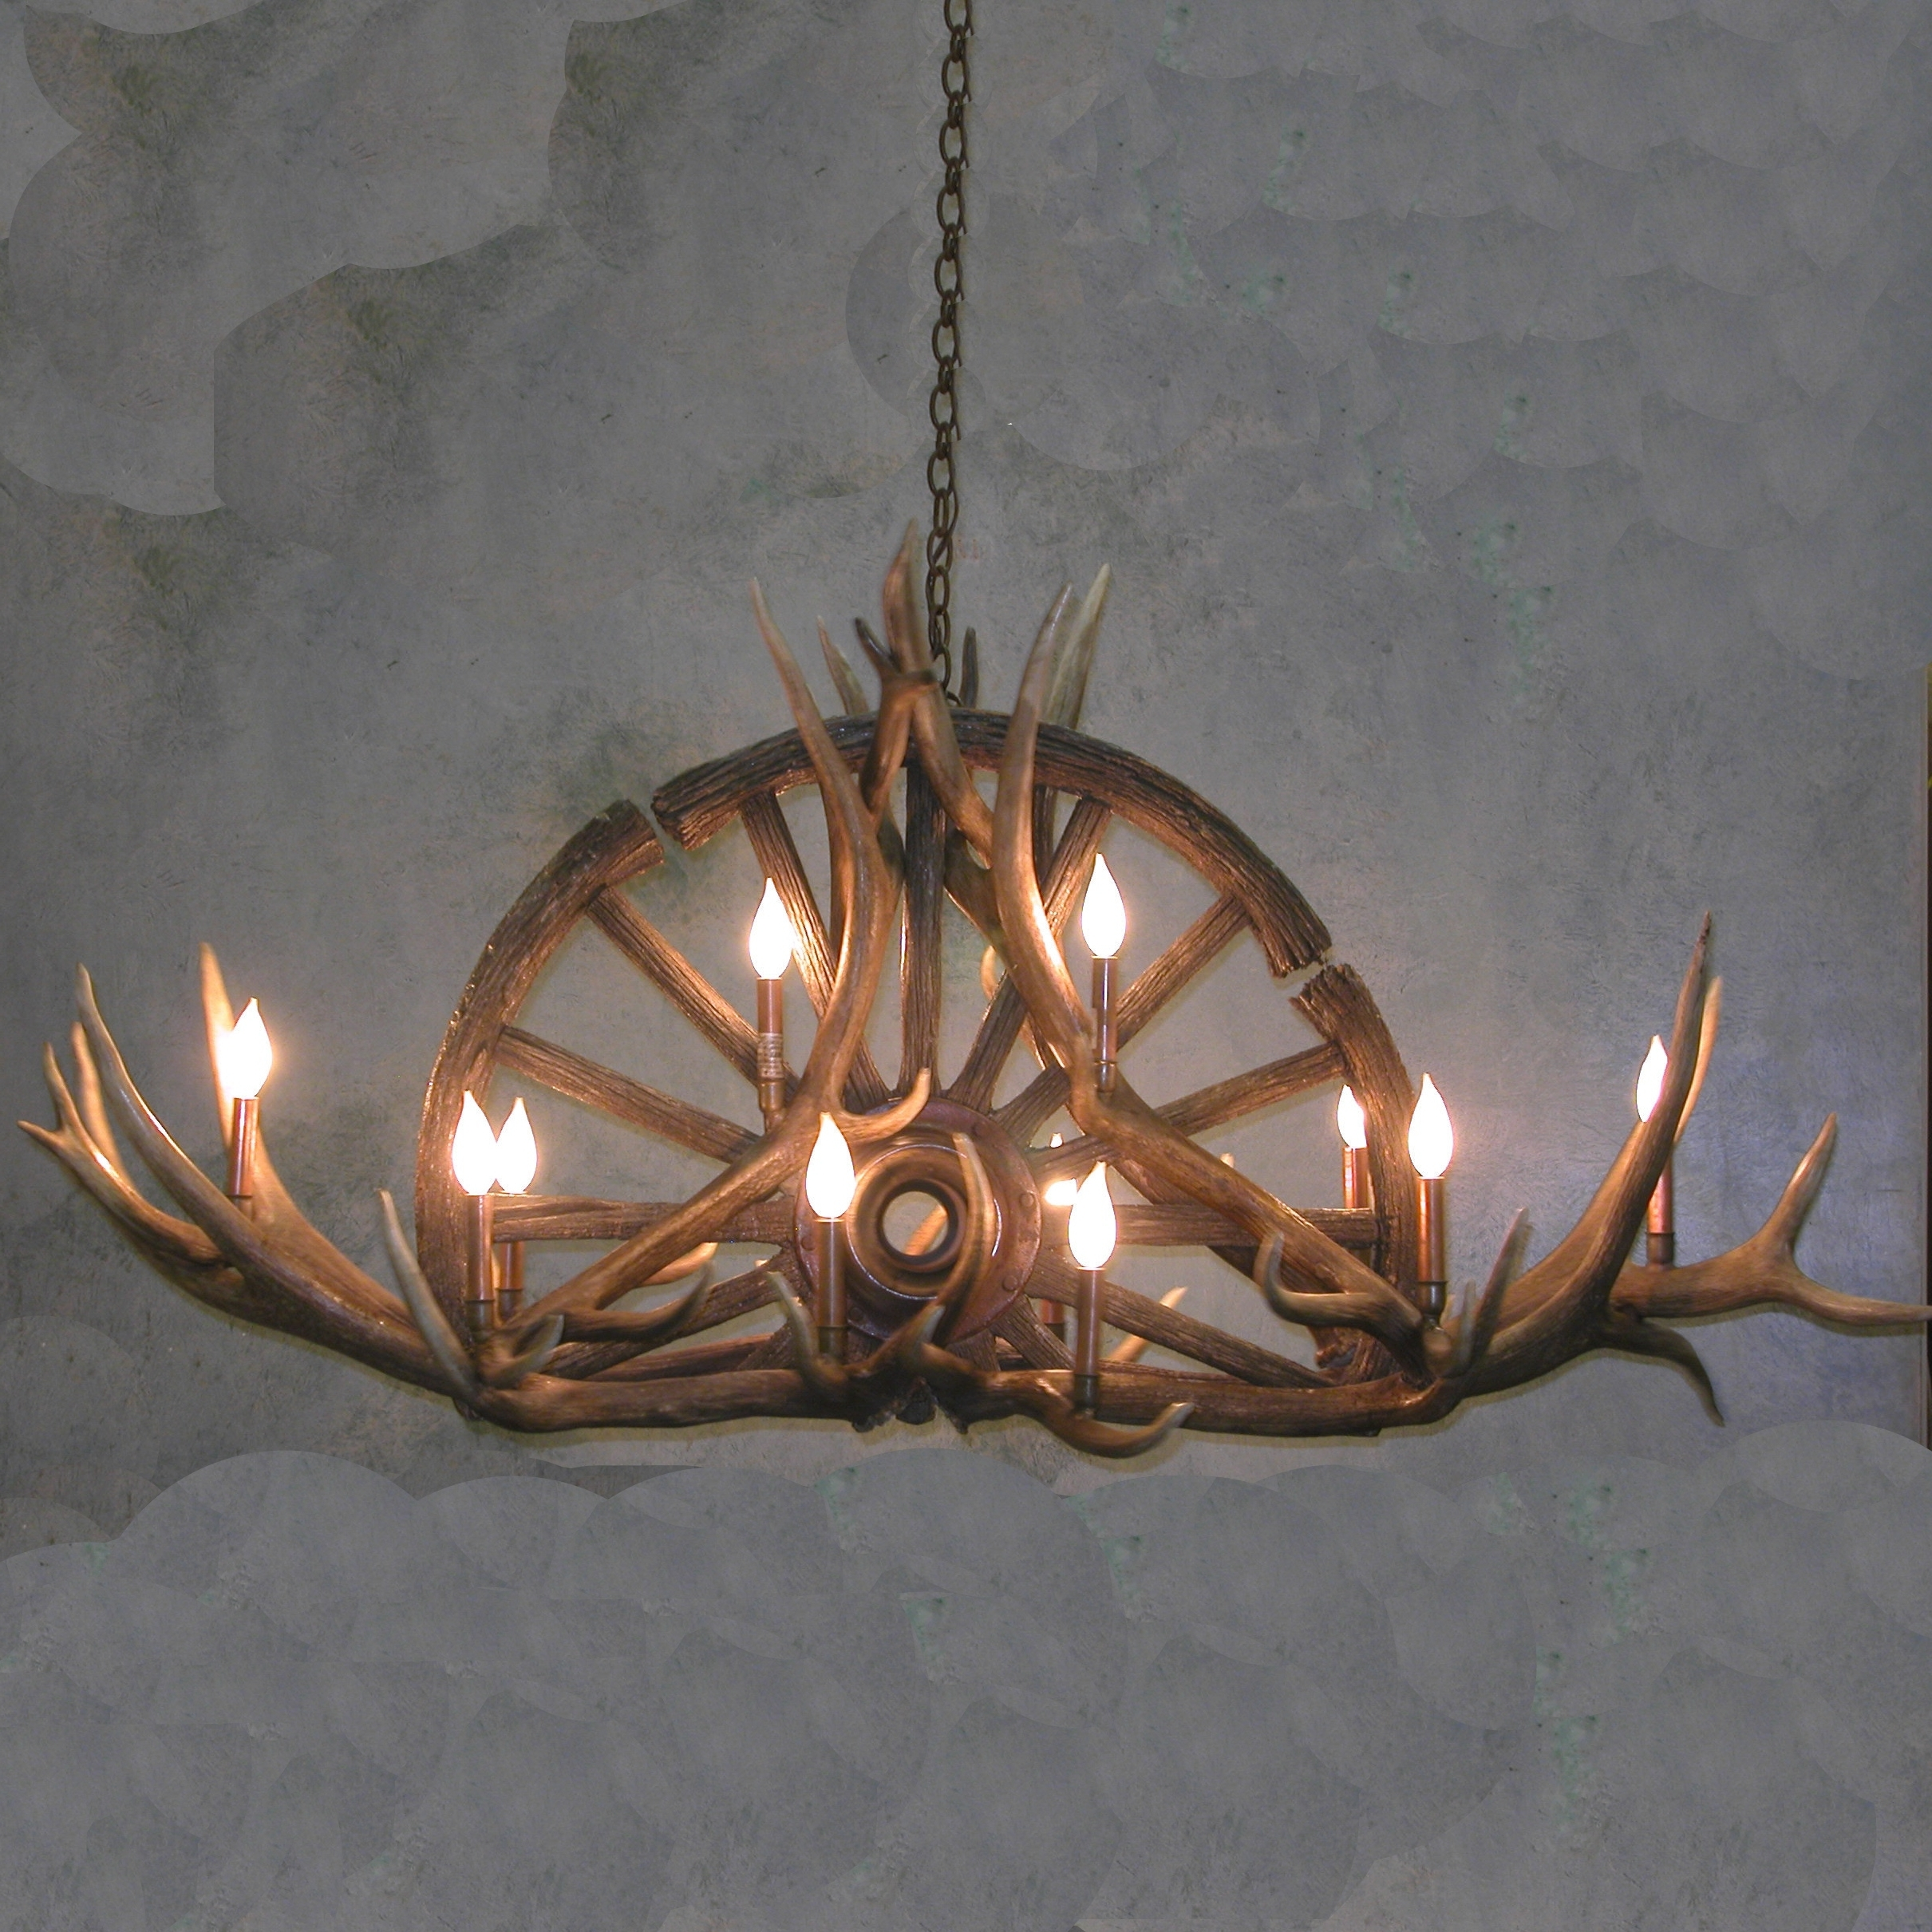 Widely Used Large Antler Chandelier Within Wagon Wheel Antler Chandelier (View 19 of 20)